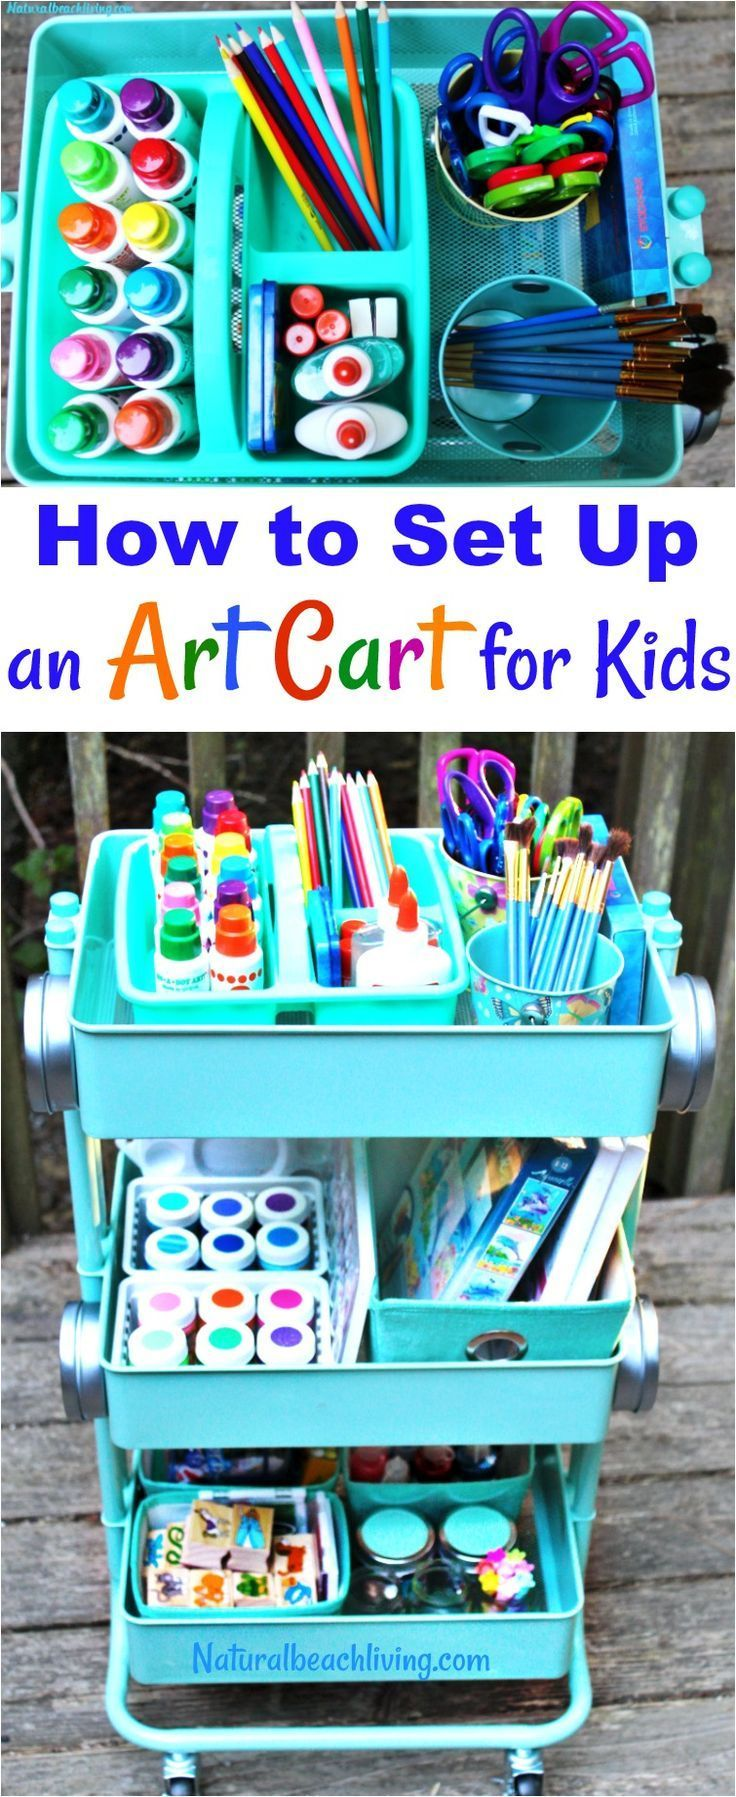 744 best art for kids and adults images on pinterest for Crafts classes for adults